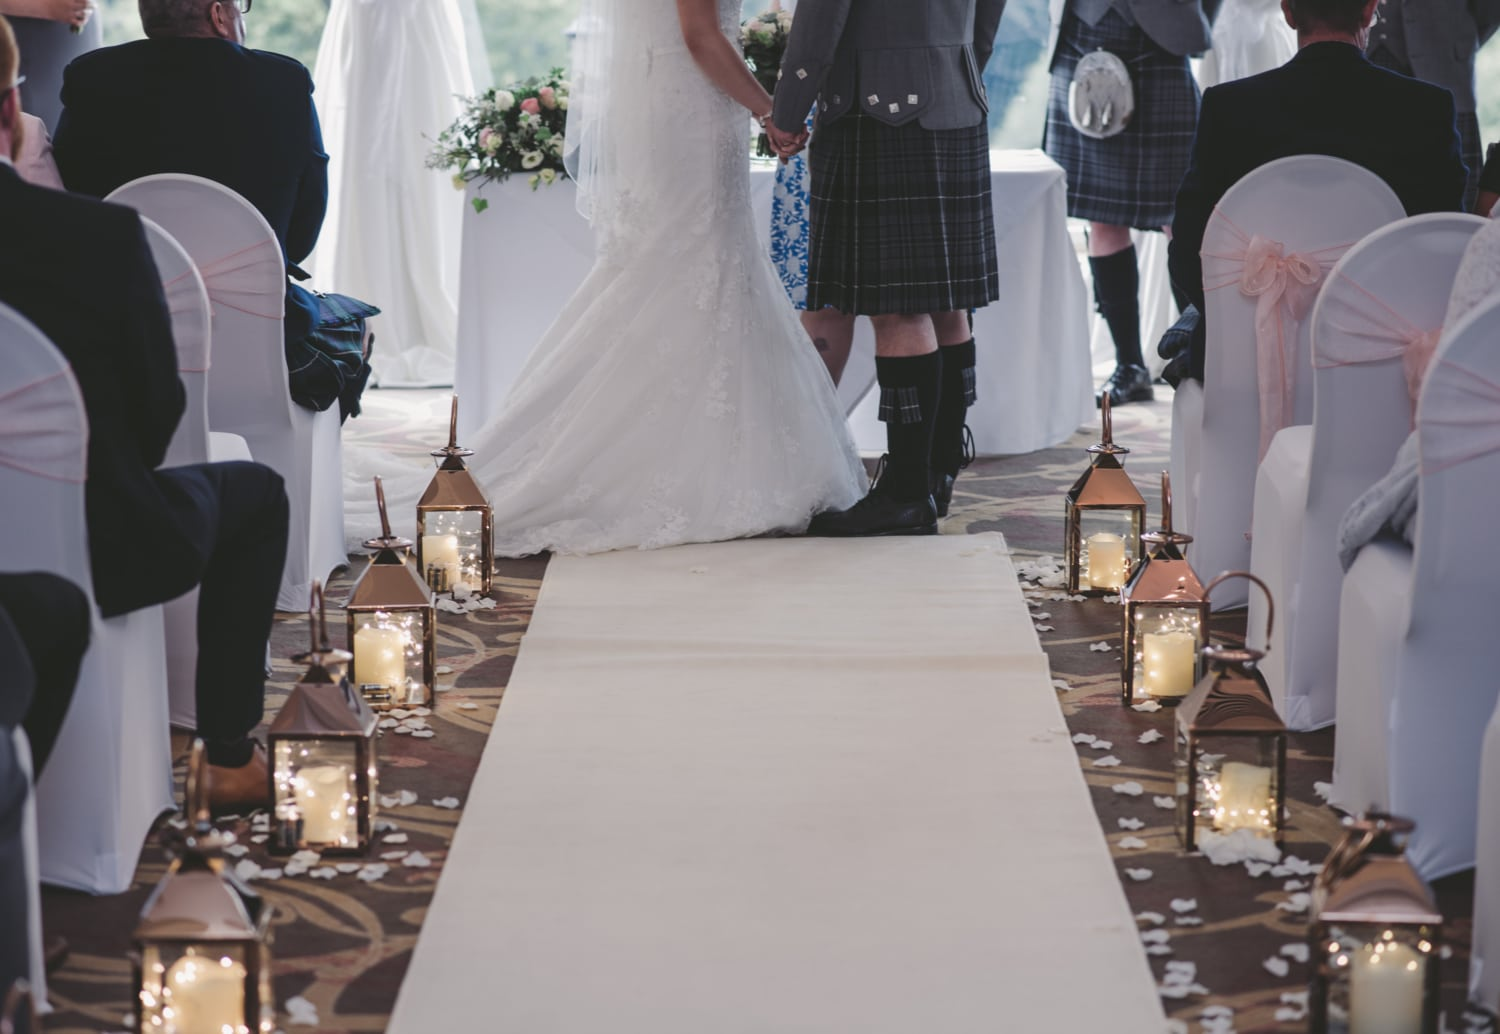 A bride and groom getting married at a Scottish wedding